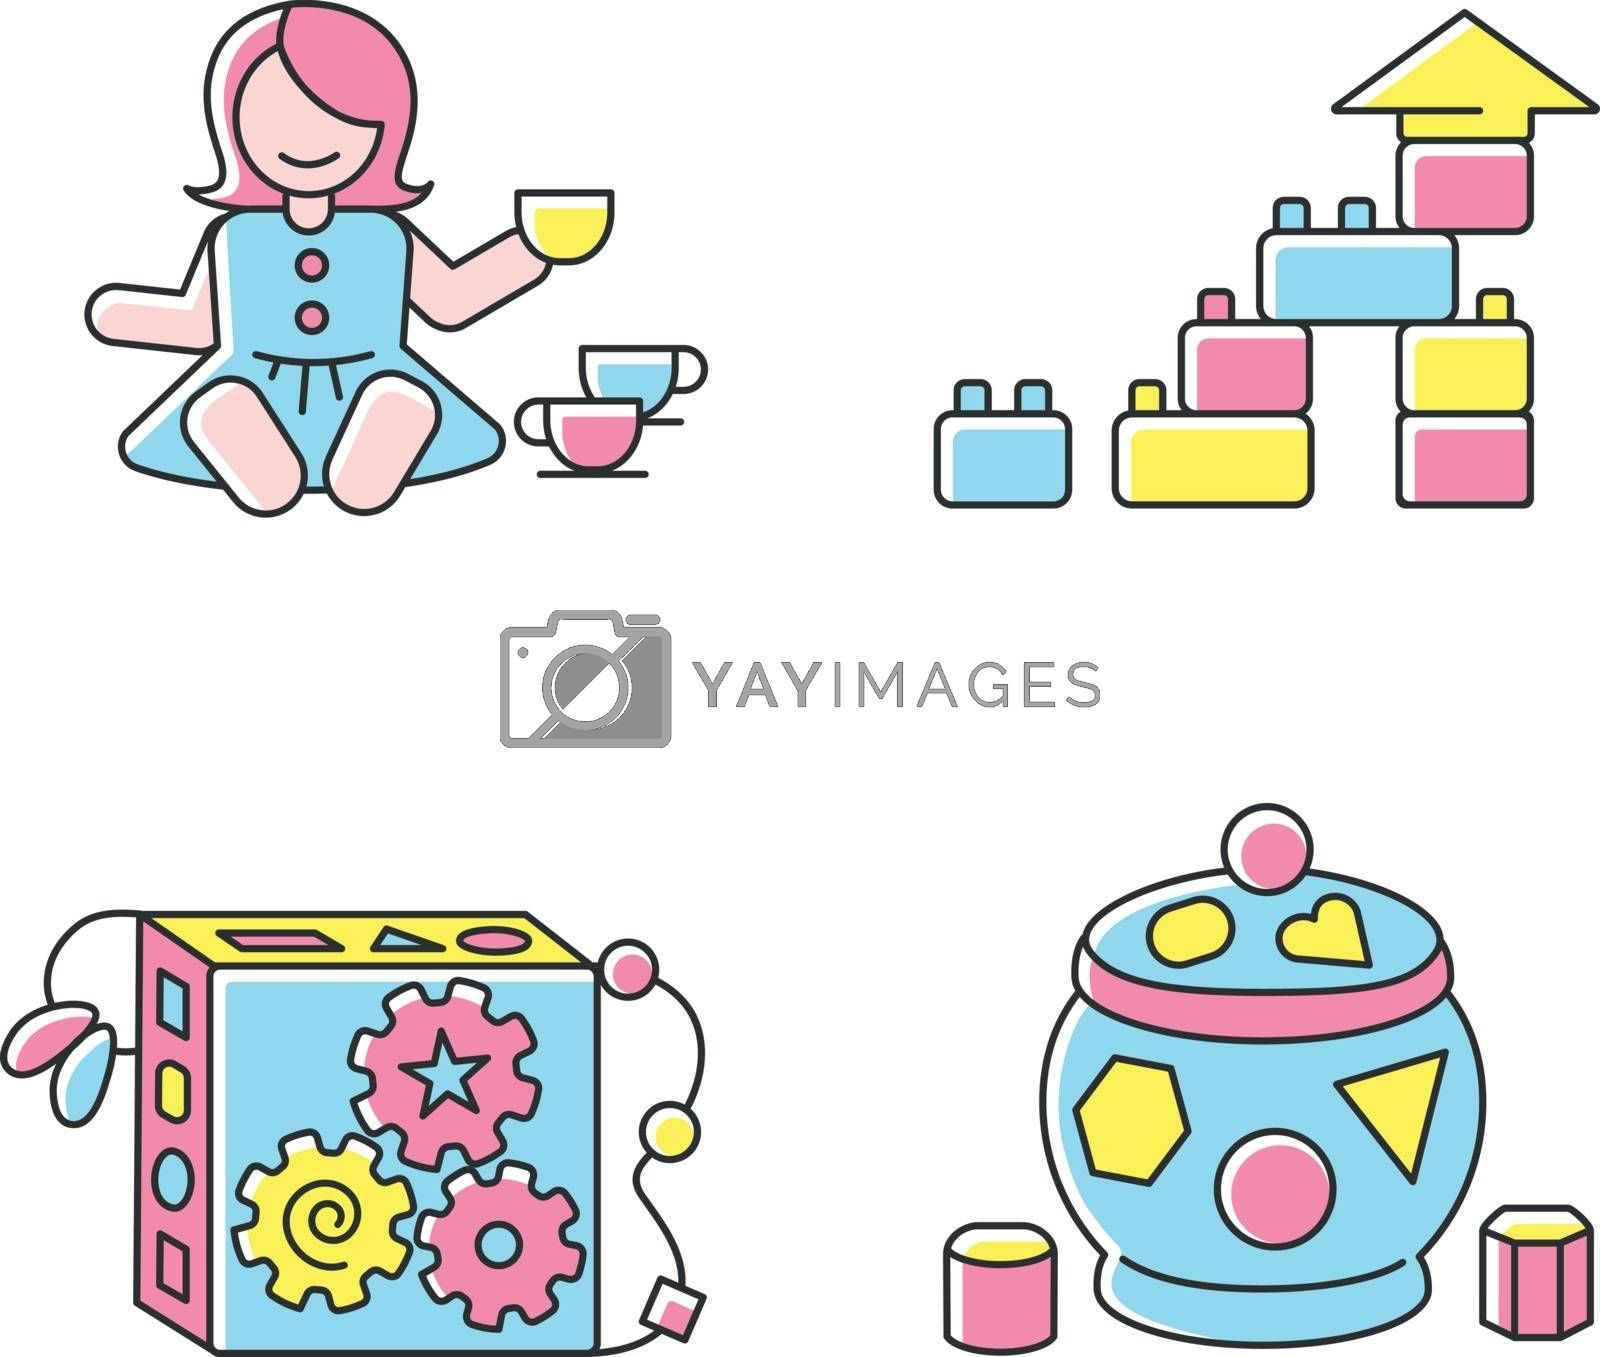 Sensory toys for toddlers RGB color icons set. Baby doll with tea set. Educational toys for children early development. Children amusement and activity ideas. Isolated vector illustrations